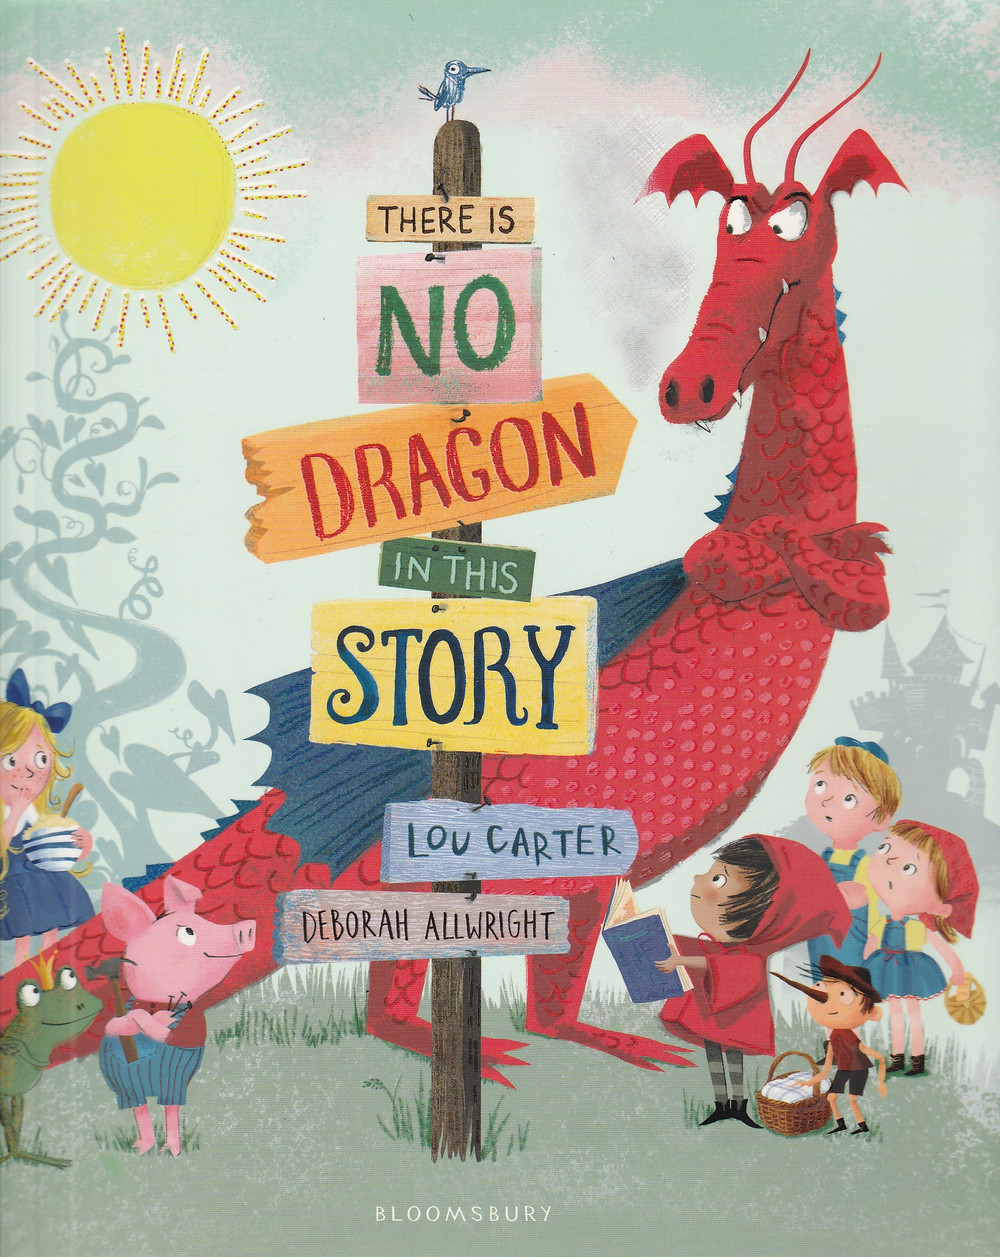 There is no dragon in this story by Lou Carter and Deborah Allwright, published by Bloomsbury. book cover.